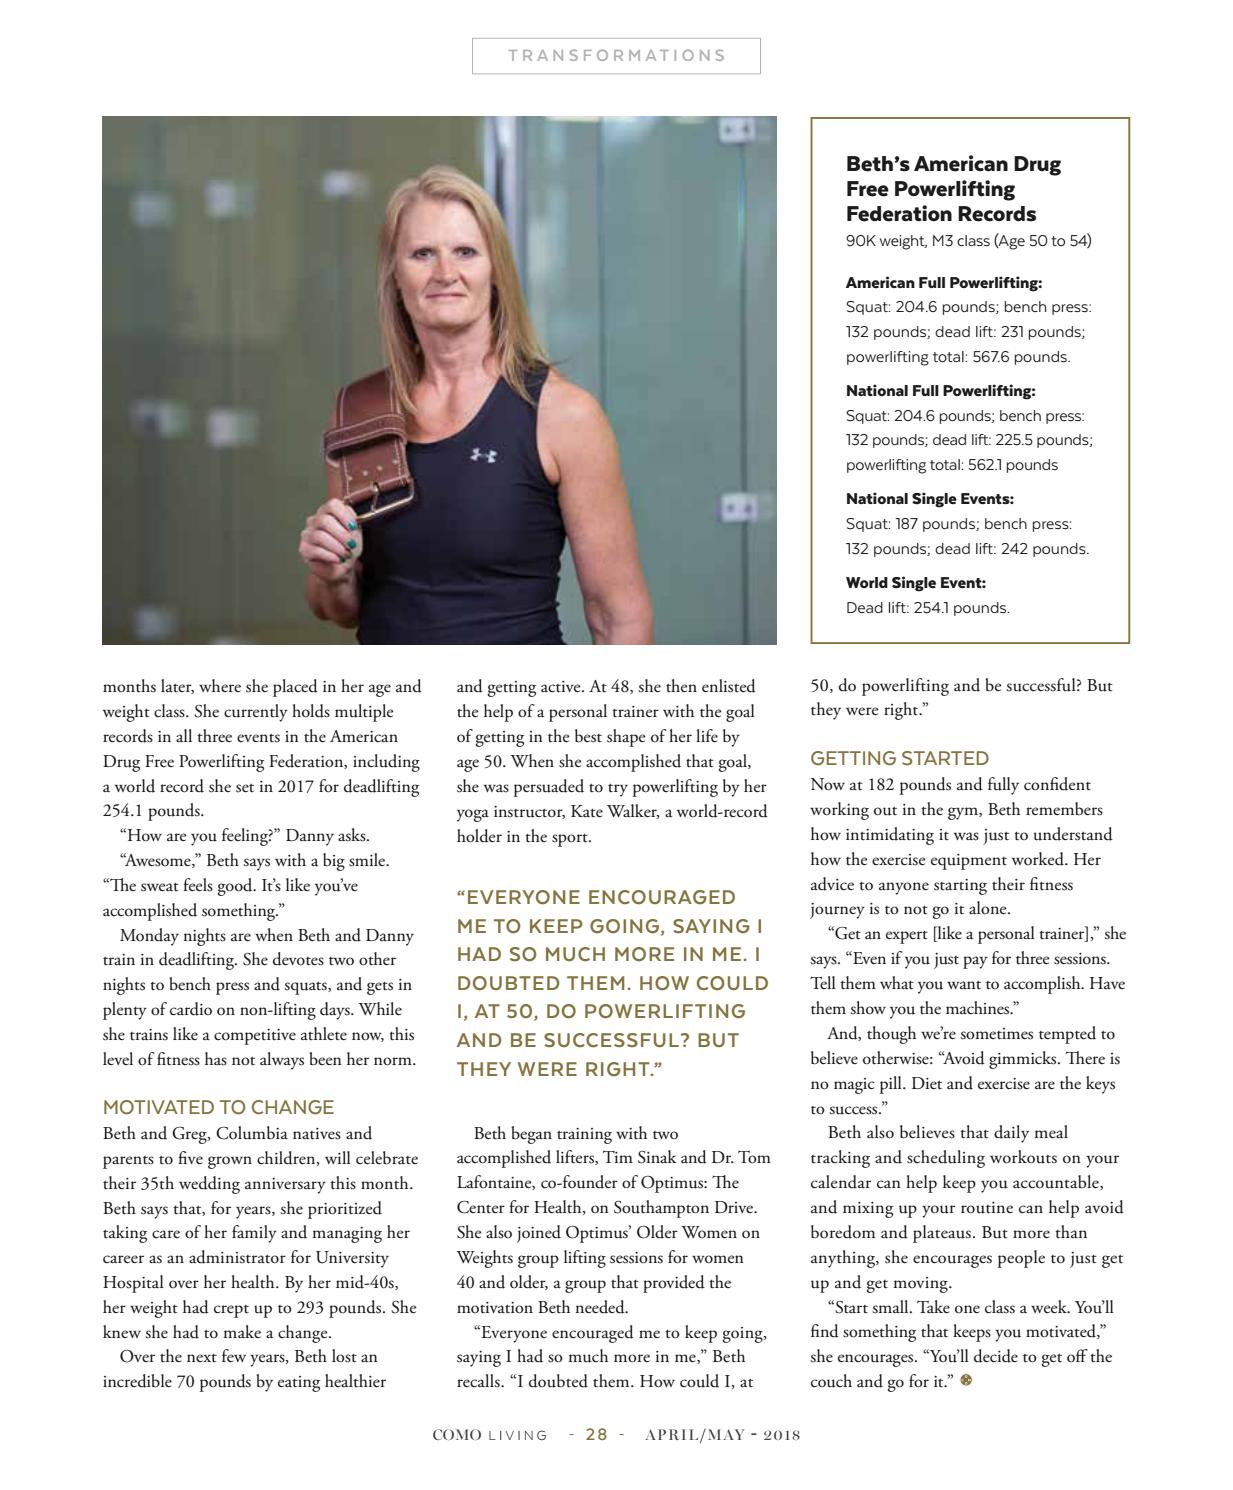 Como Living Magazine april may 2018 by Business Times